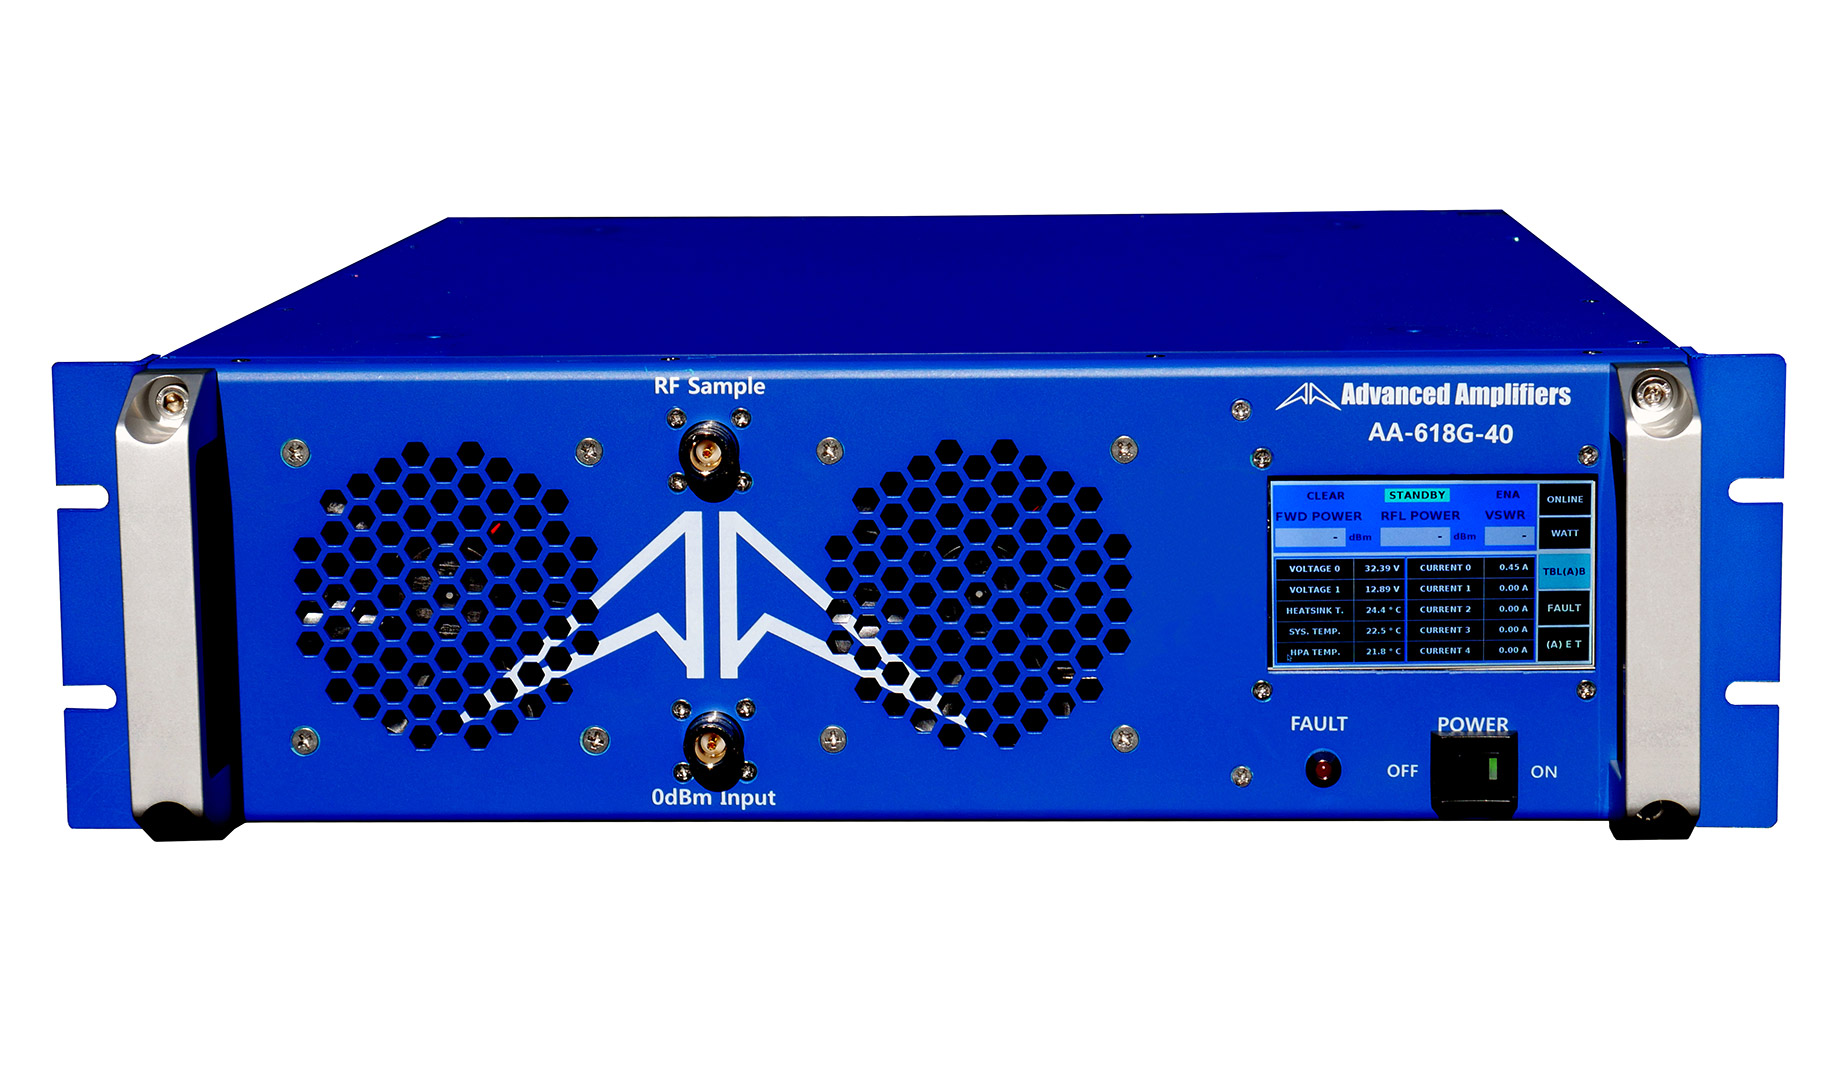 Advanced Amplifiers AA-618G-40